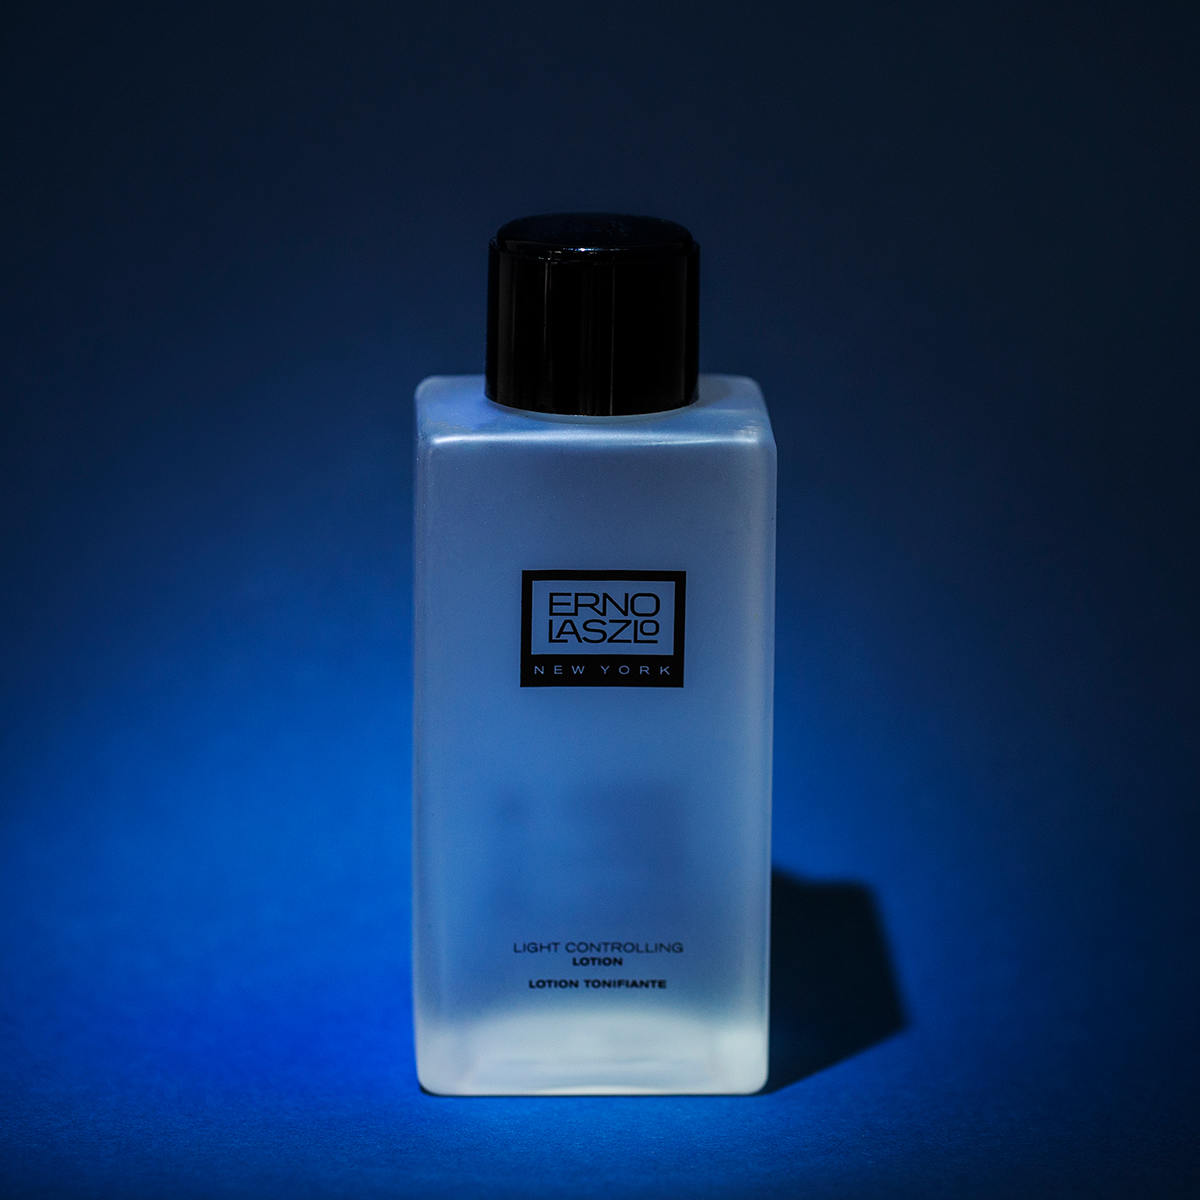 Light Controlling Lotion 1200